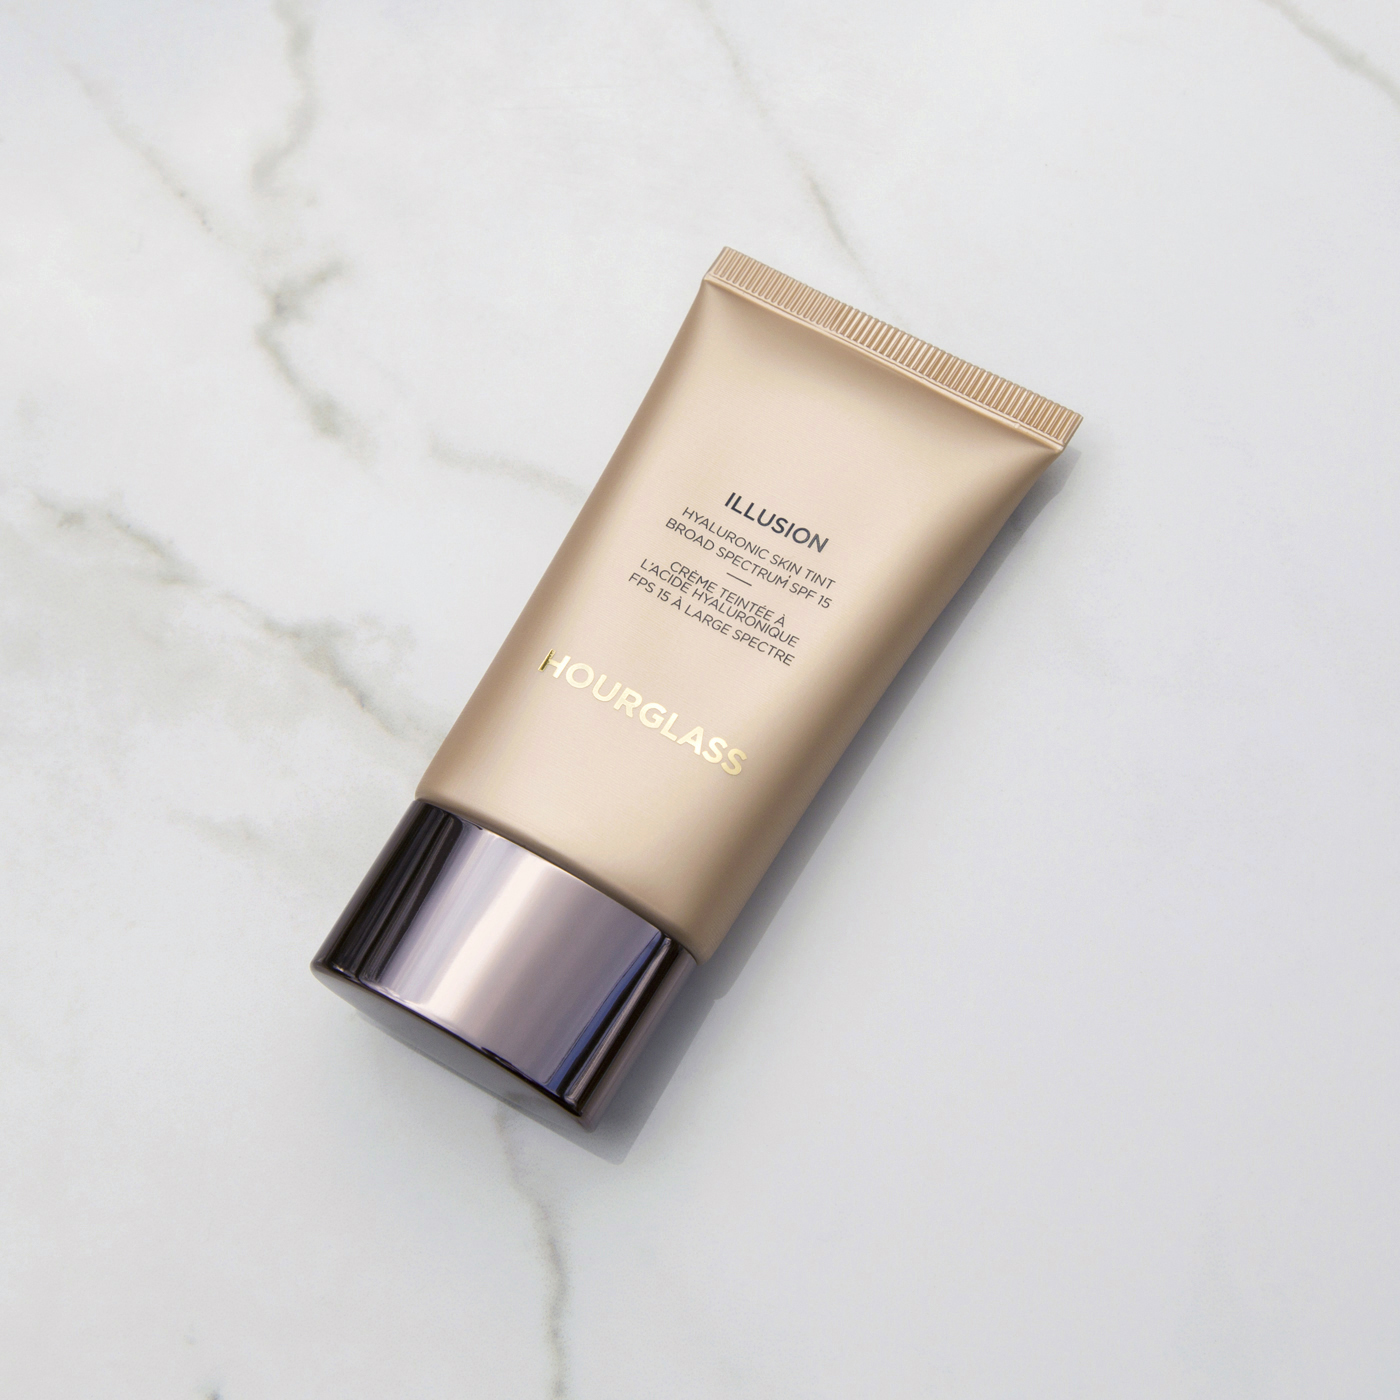 Hourglass Illusion Hyaluronic Skin Tint in Shell